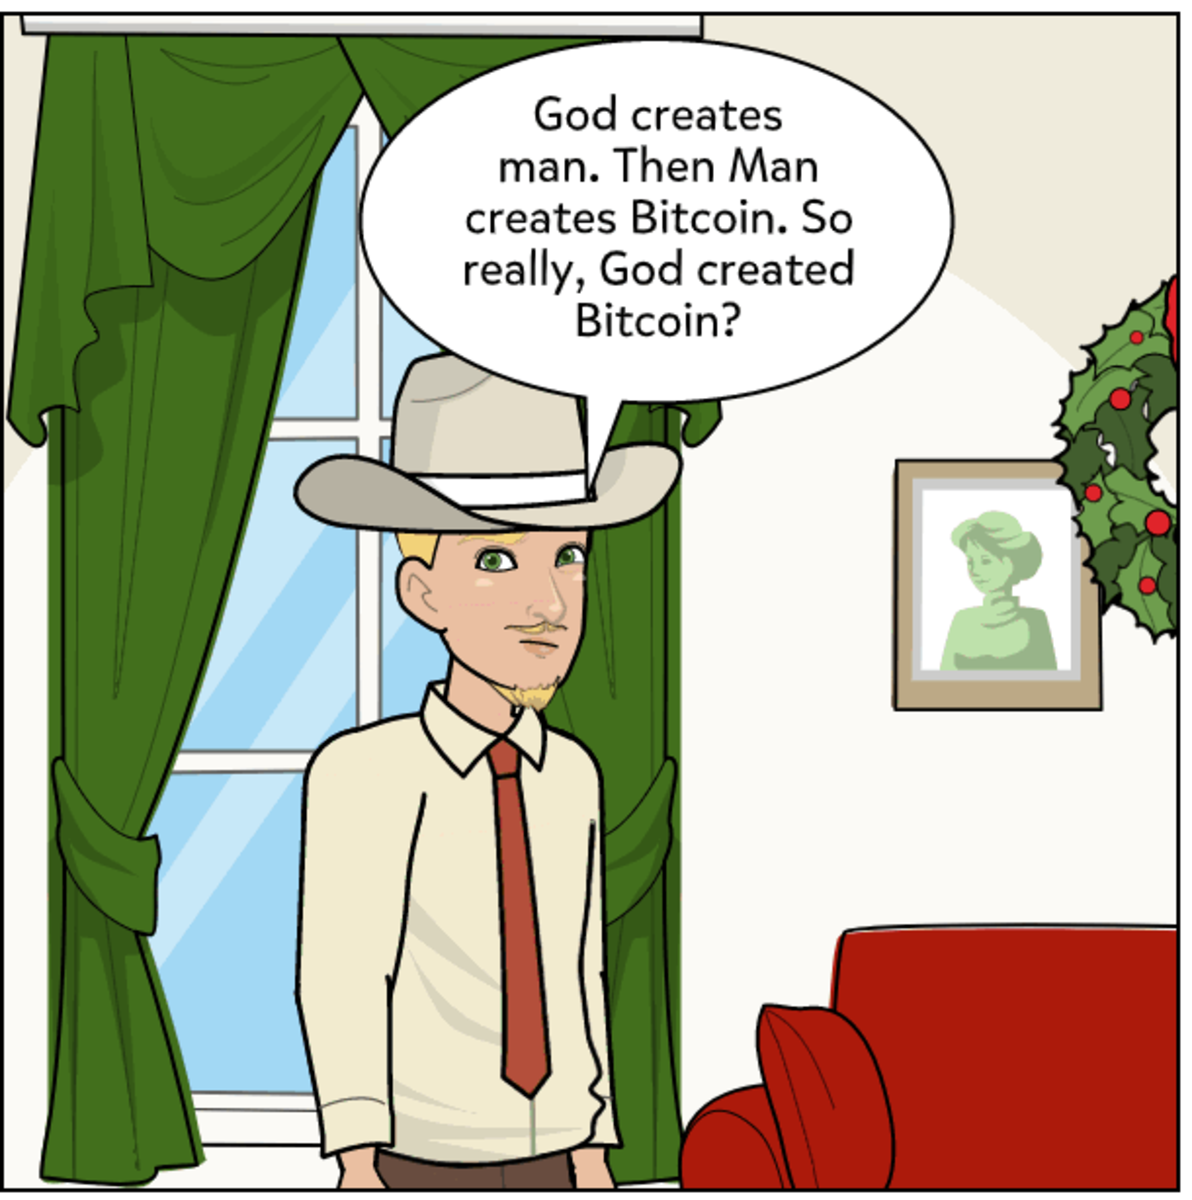 Pitching bitcoin evangelical